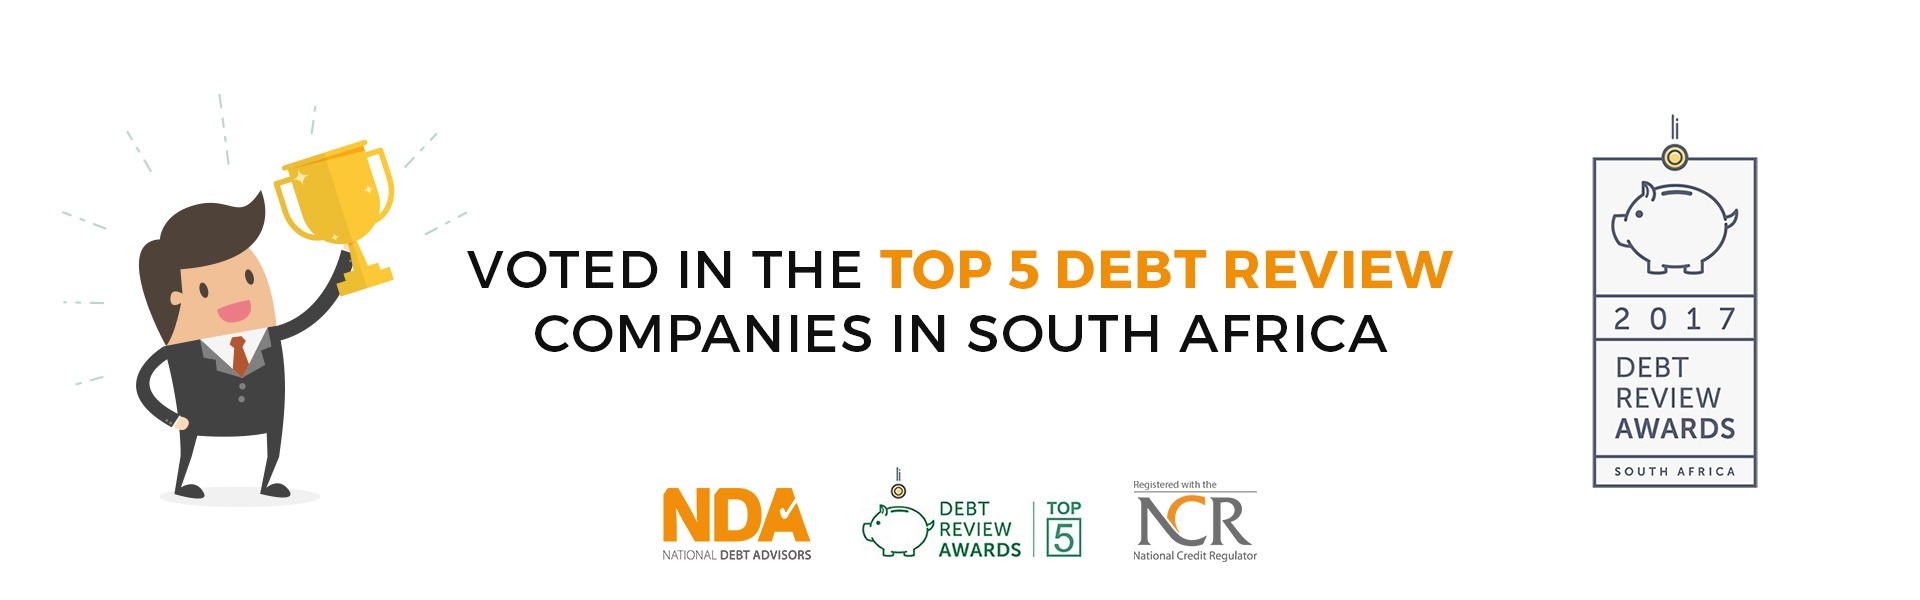 Top 5 debt review companies in south africa